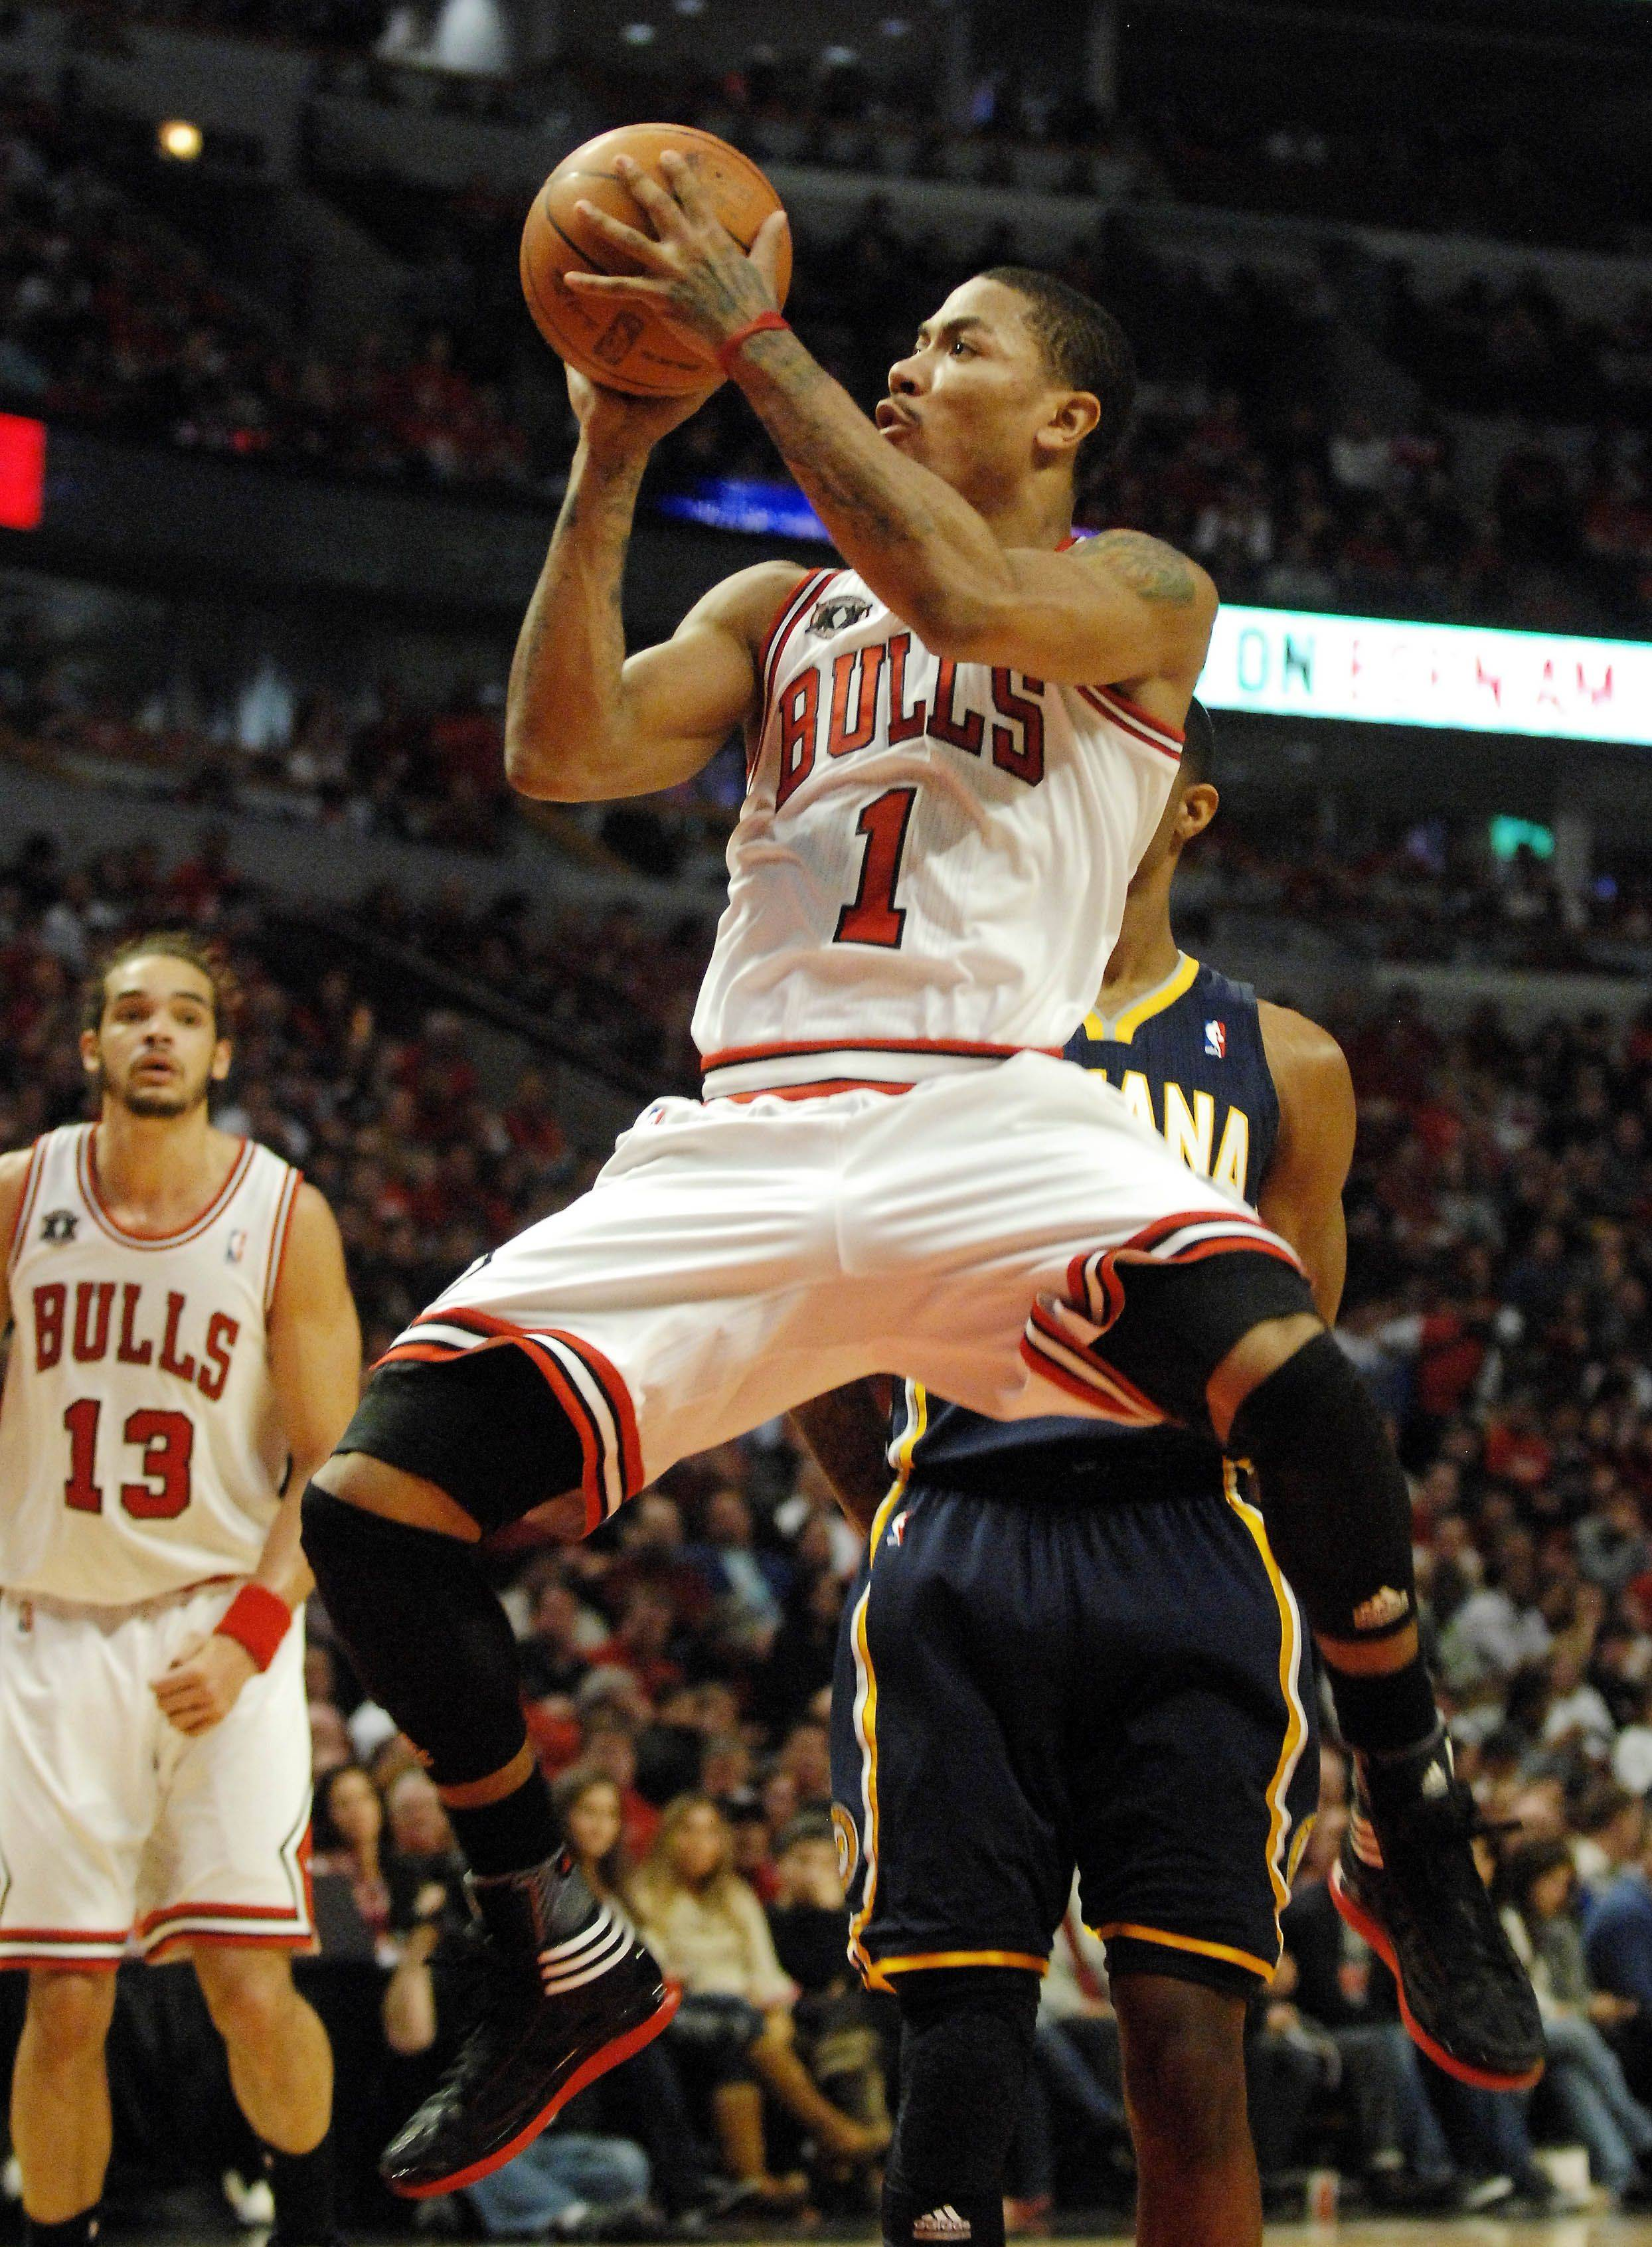 Chicago Bulls point guard Derrick Rose (1) glides to the basket and scores during Game One of the NBA Eastern Conference Quarterfinals Saturday at the United Center in Chicago.